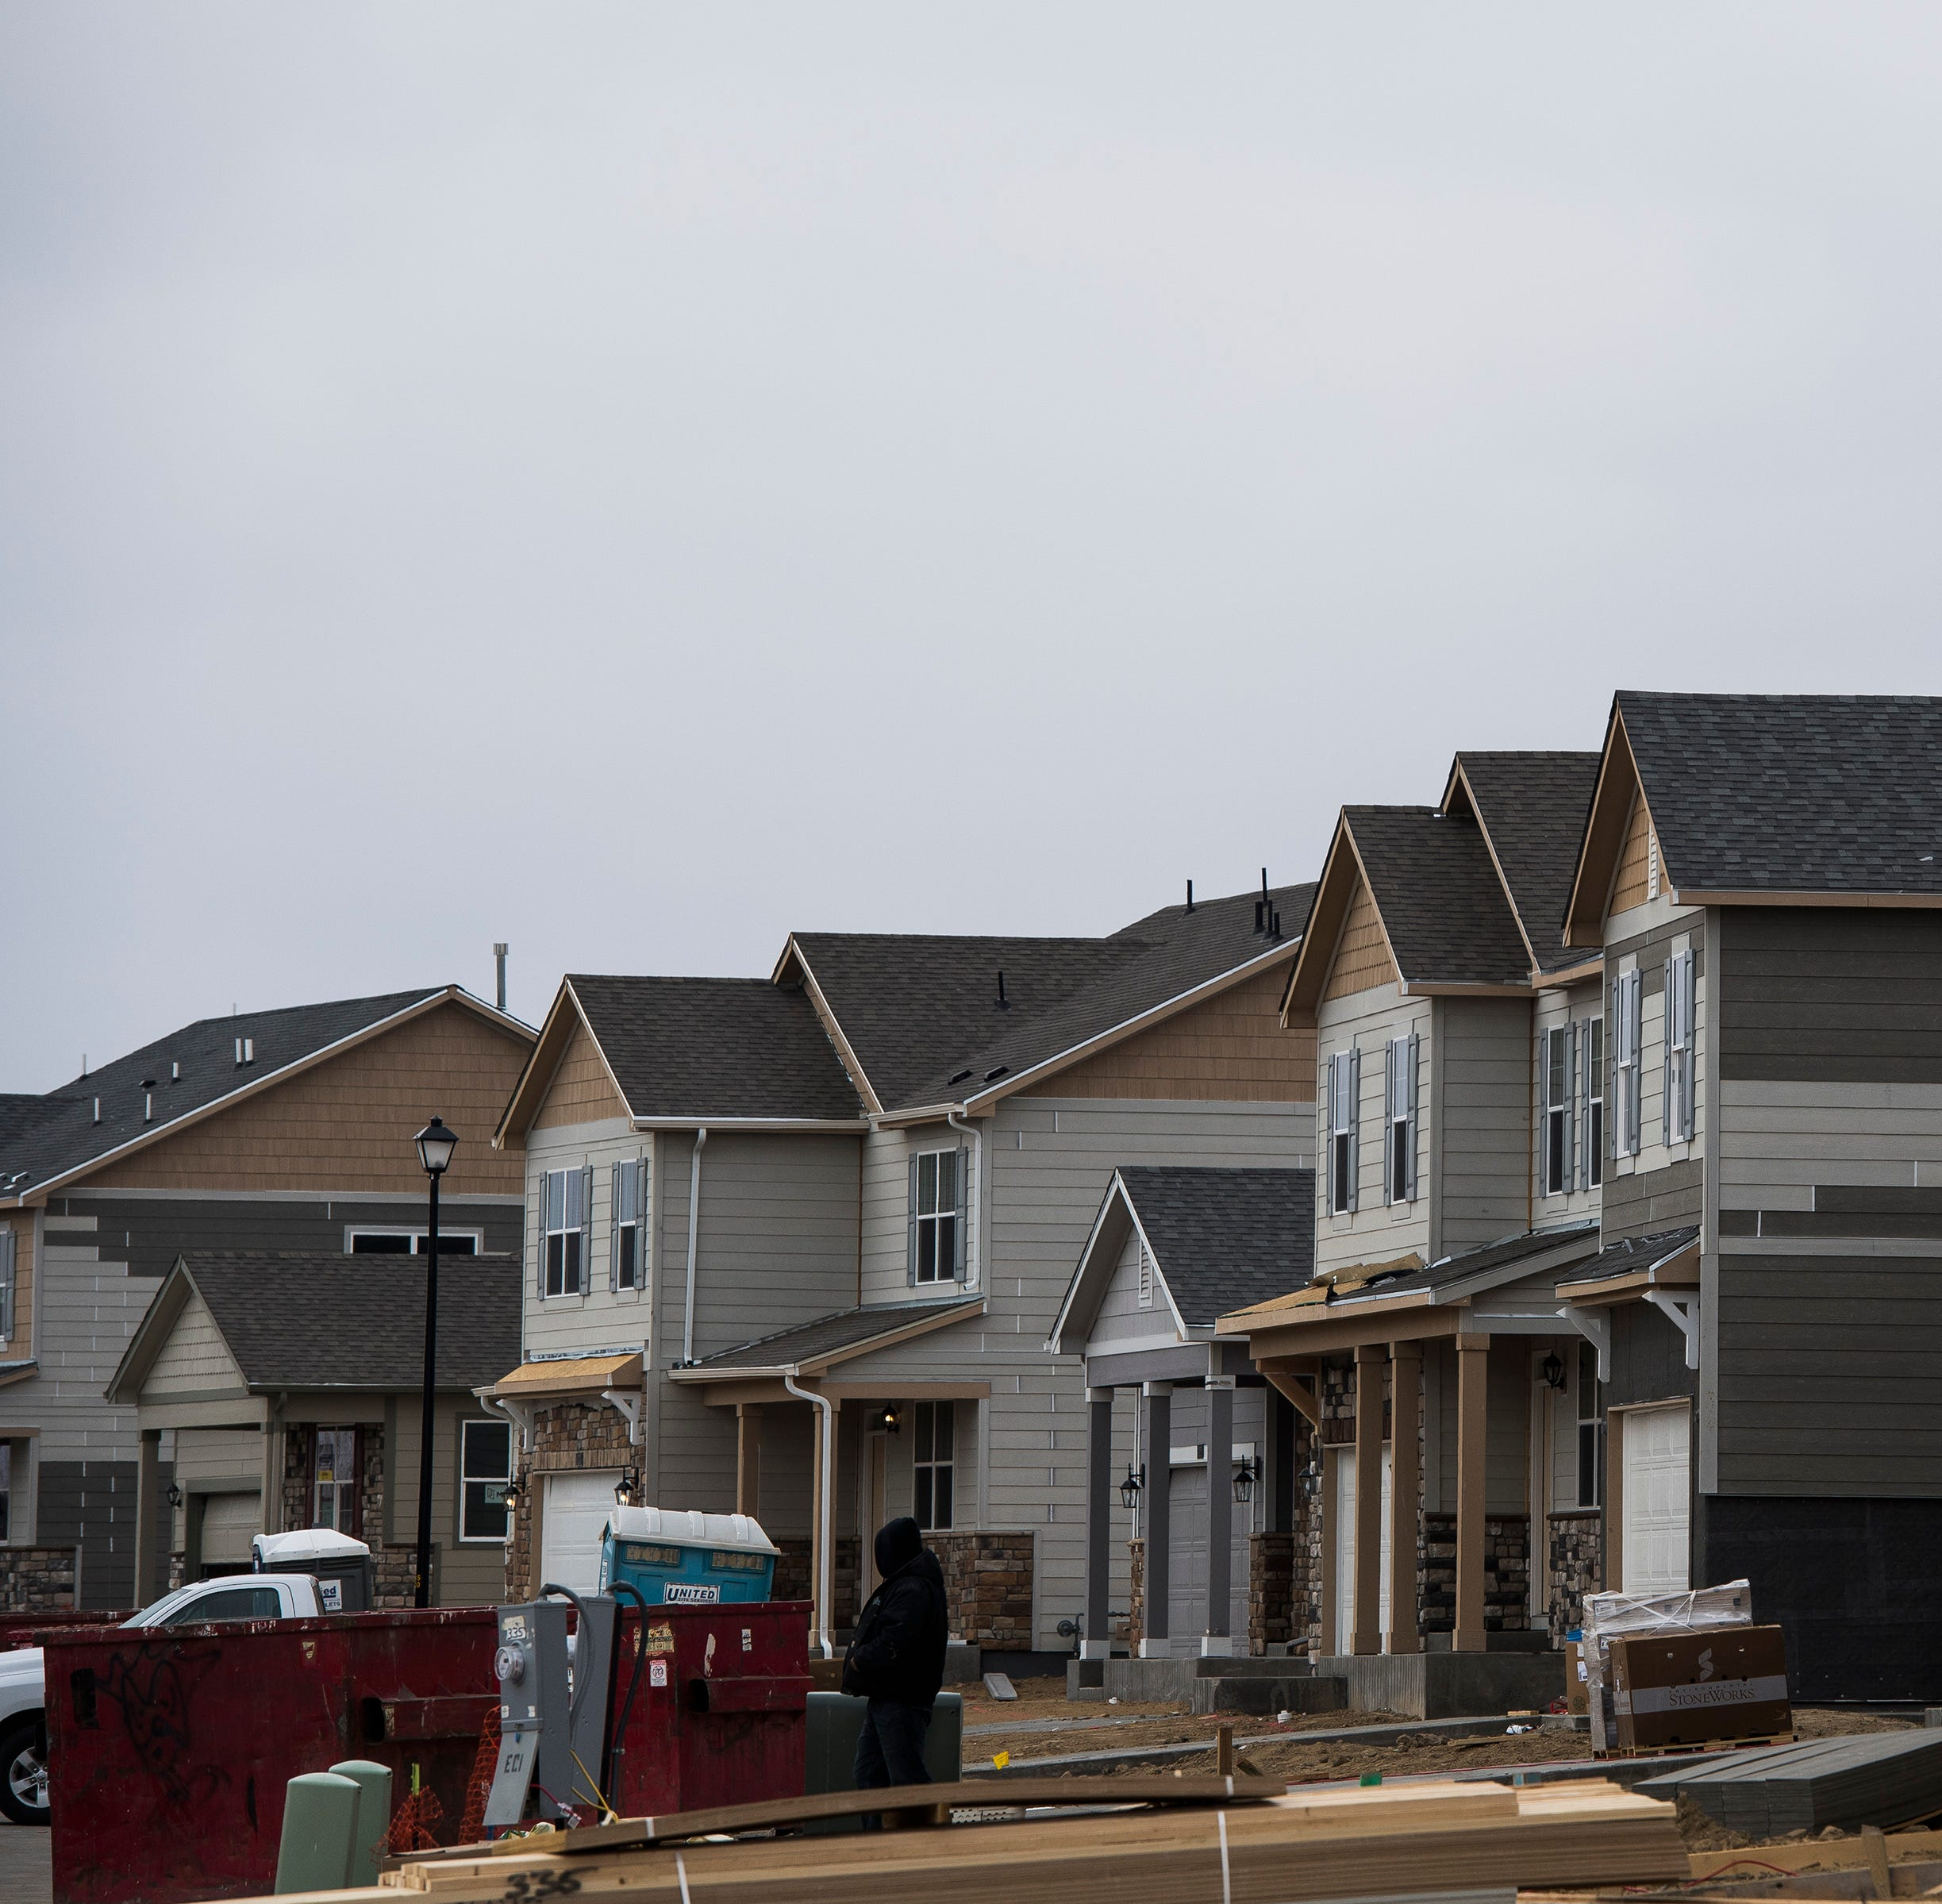 Severance is Northern Colorado's new 'go-to' place for lower-priced homes